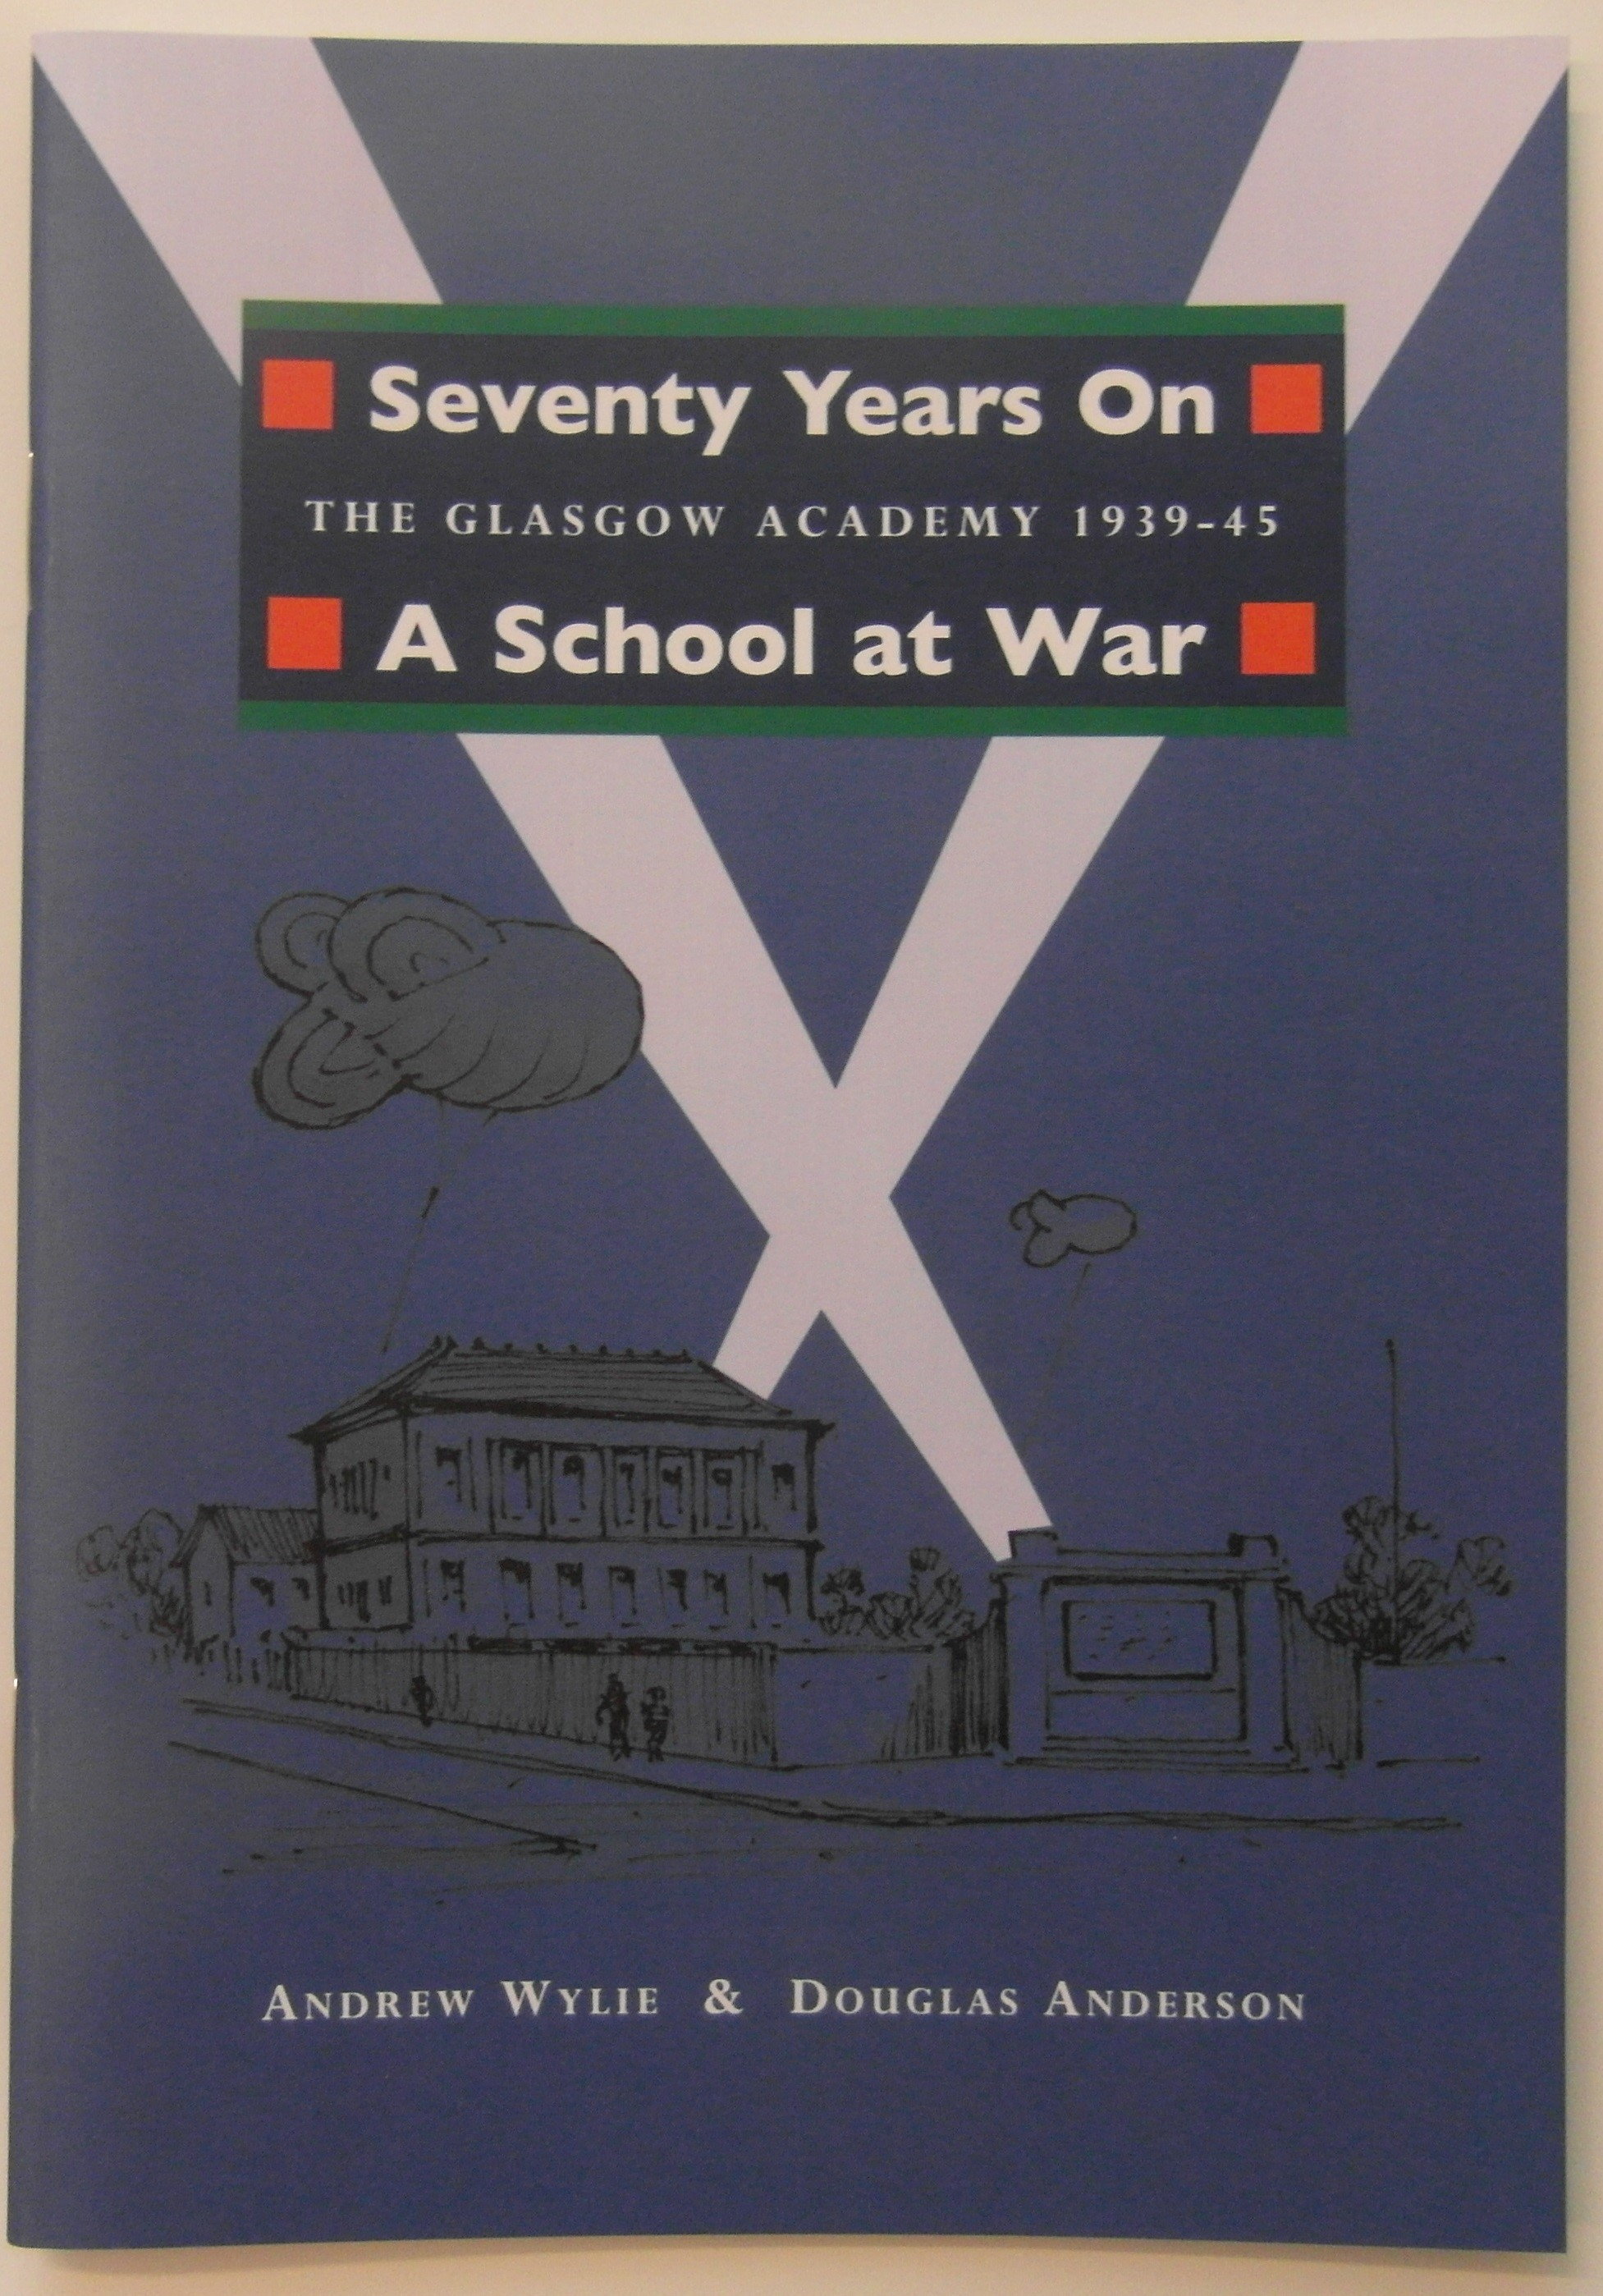 Seventy Years On, A School at War